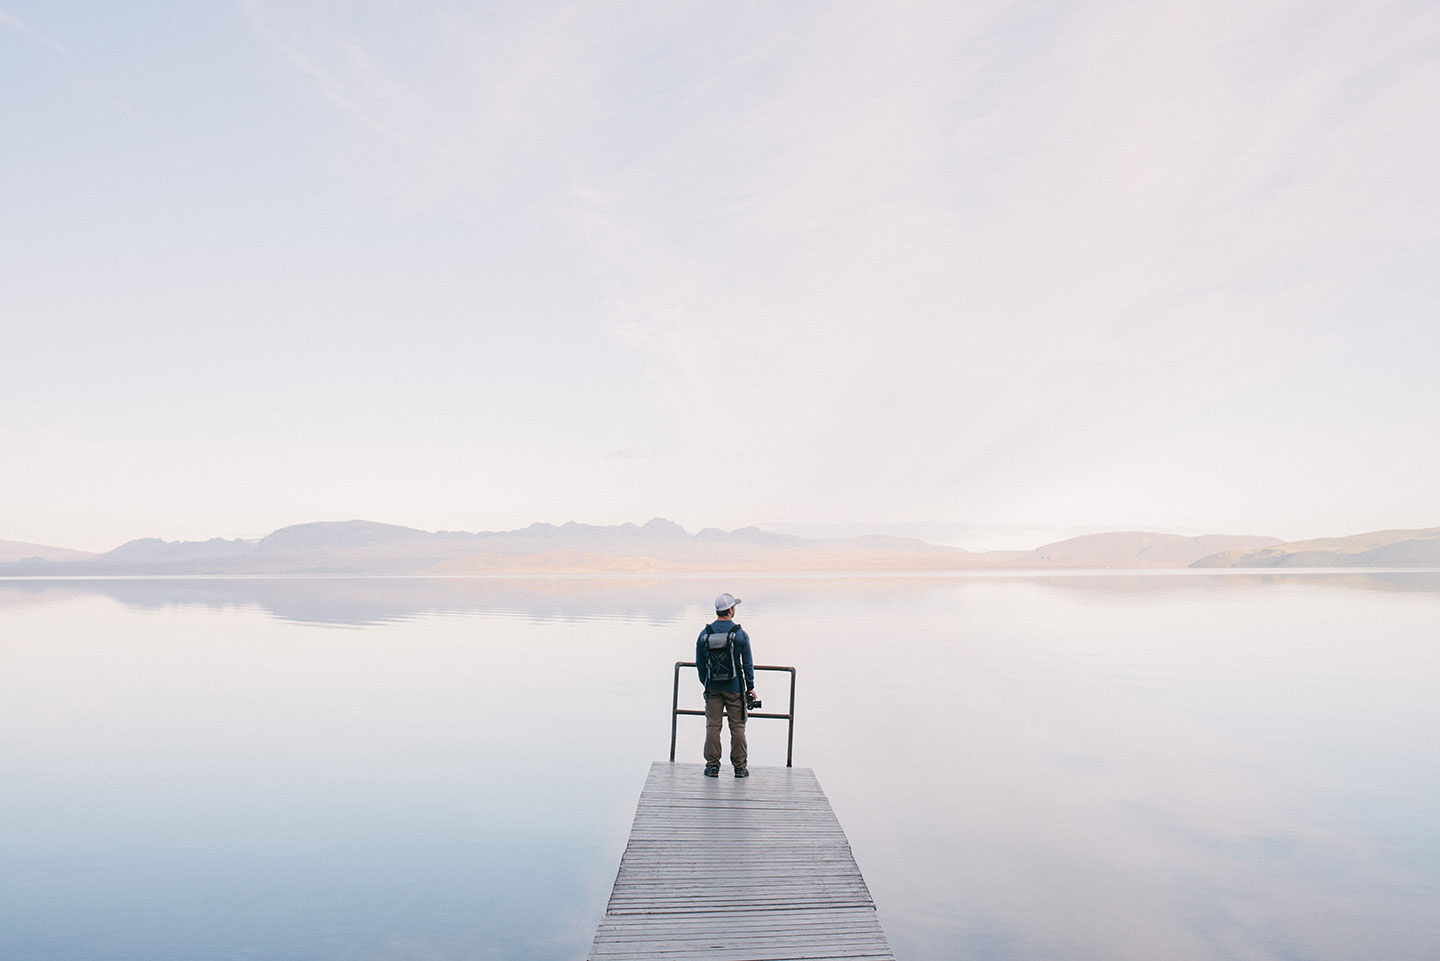 A landscape photographer stands at the end of a jetty looking out at a beautiful lake in front of him.